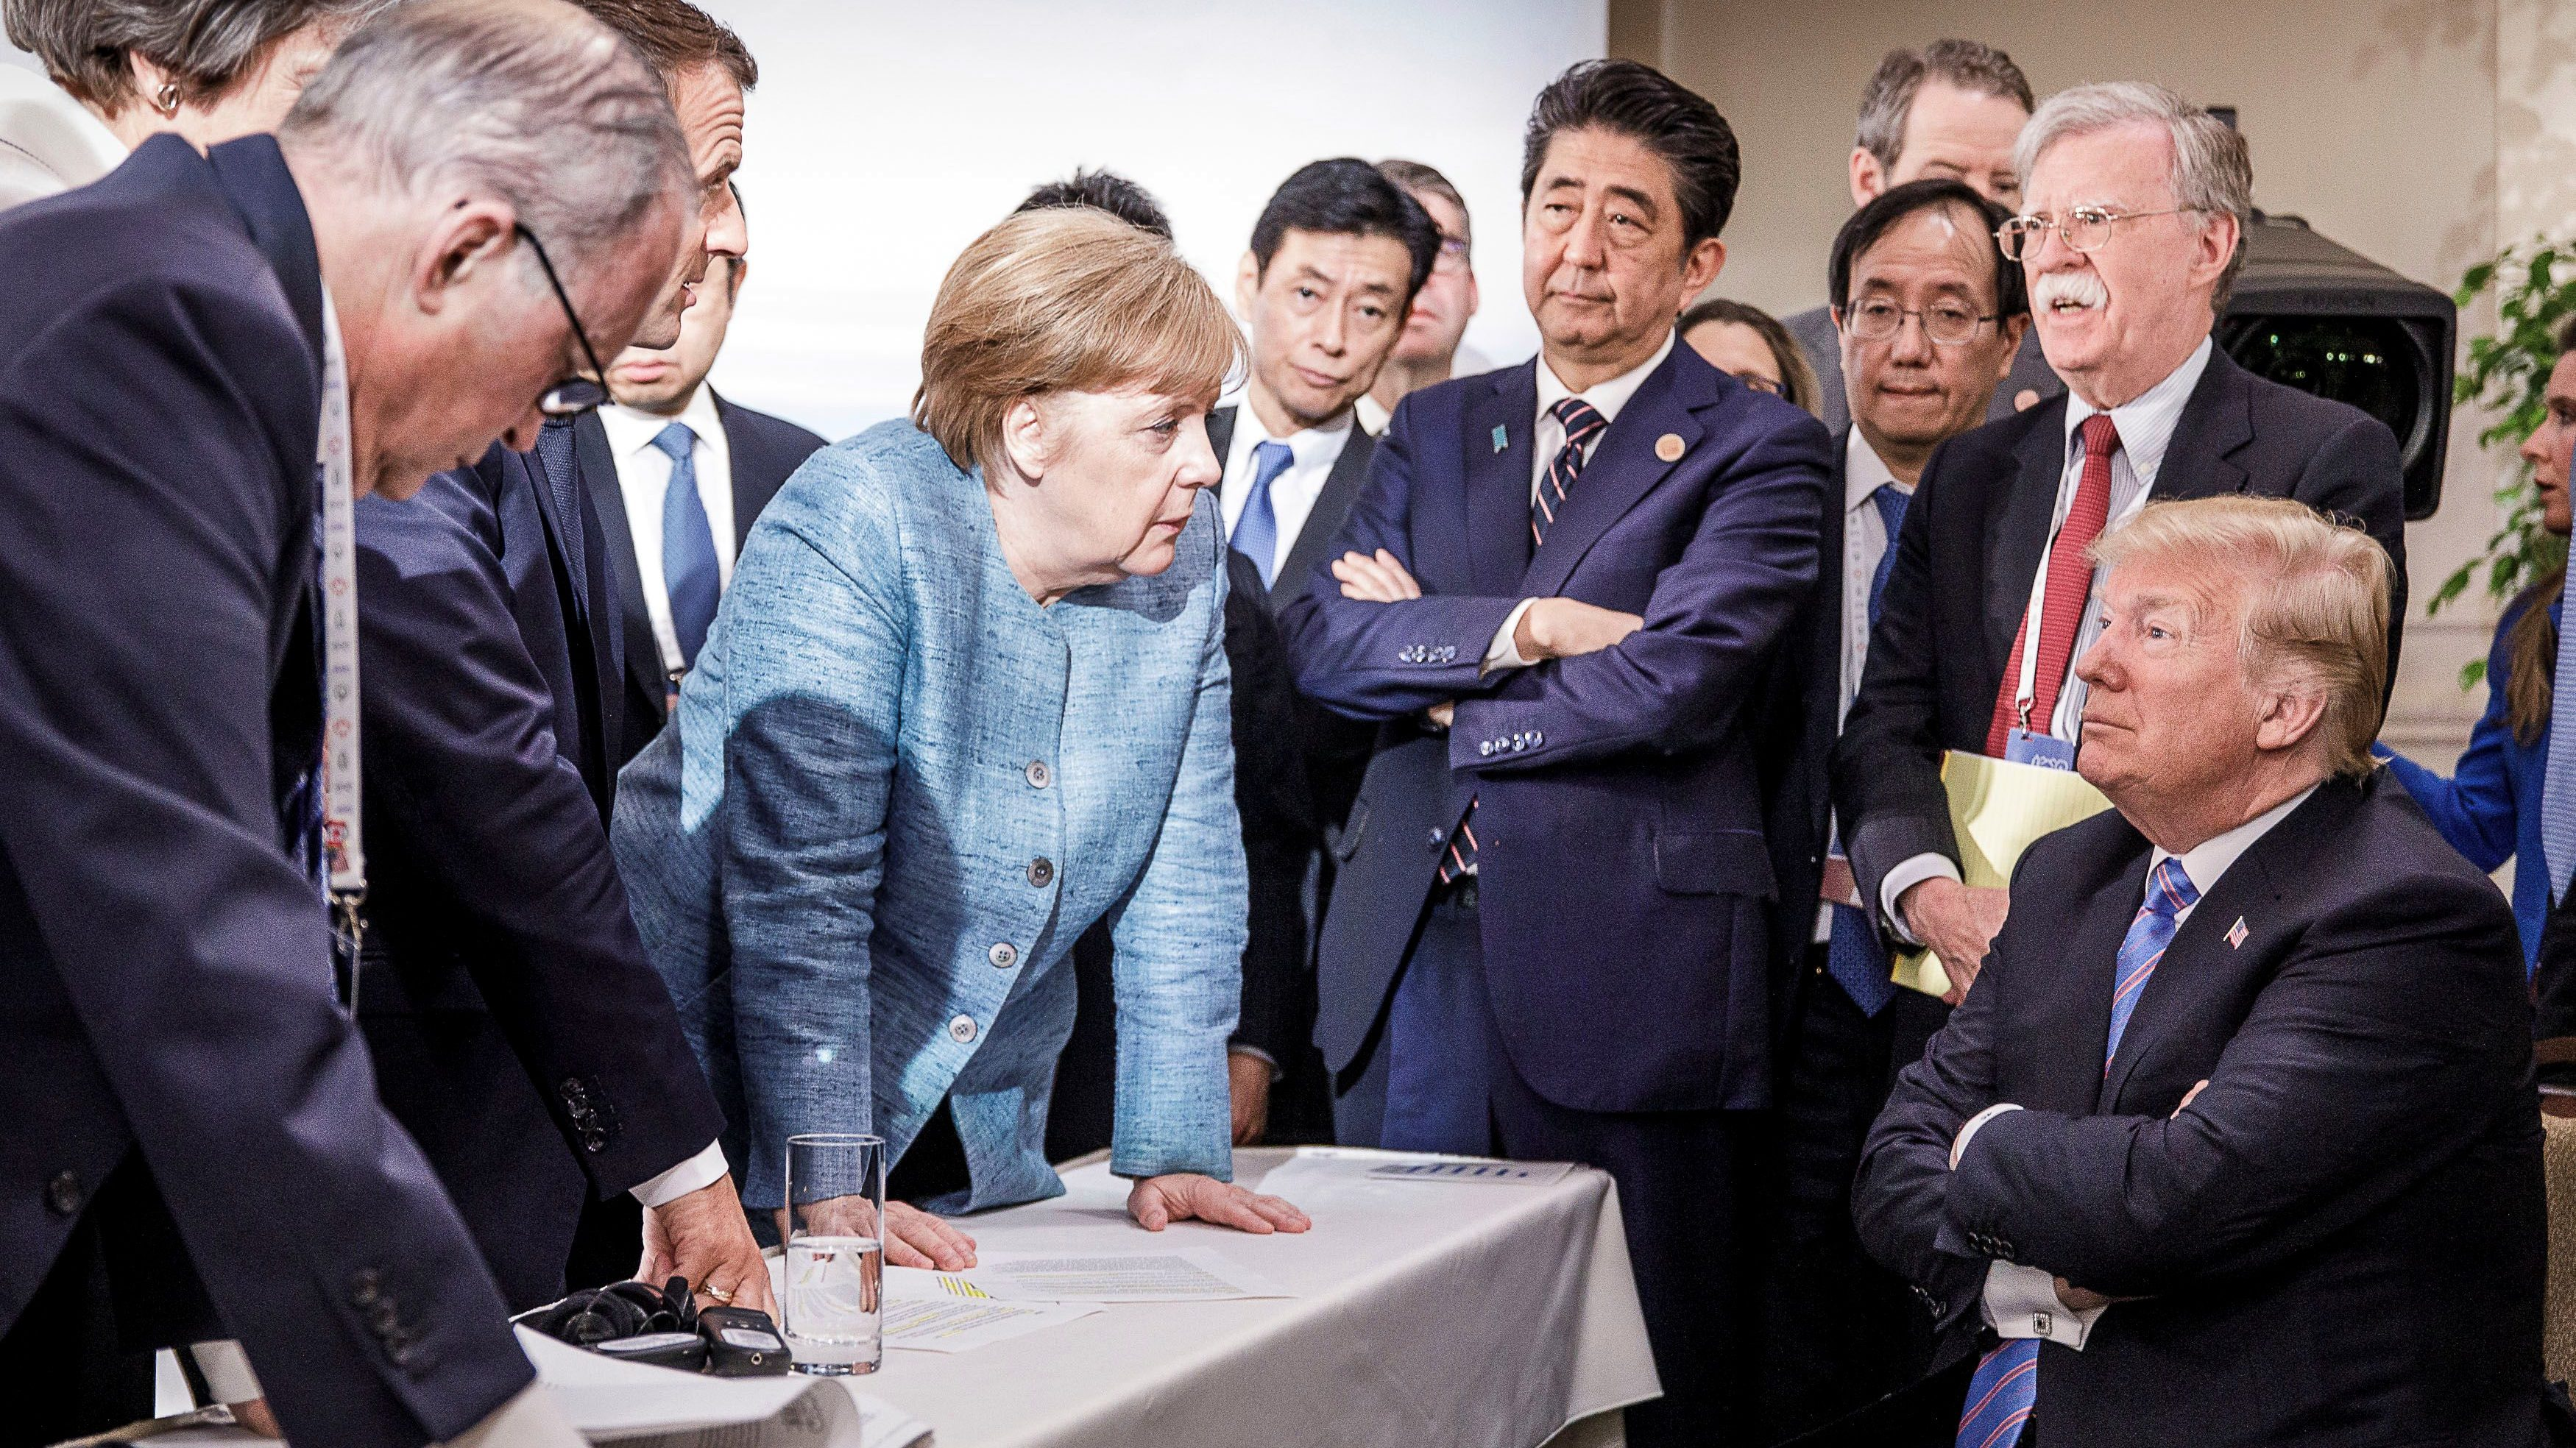 angela-merkel-g7-2018-e1528703913154.jpg?quality=80&strip=all&w=940